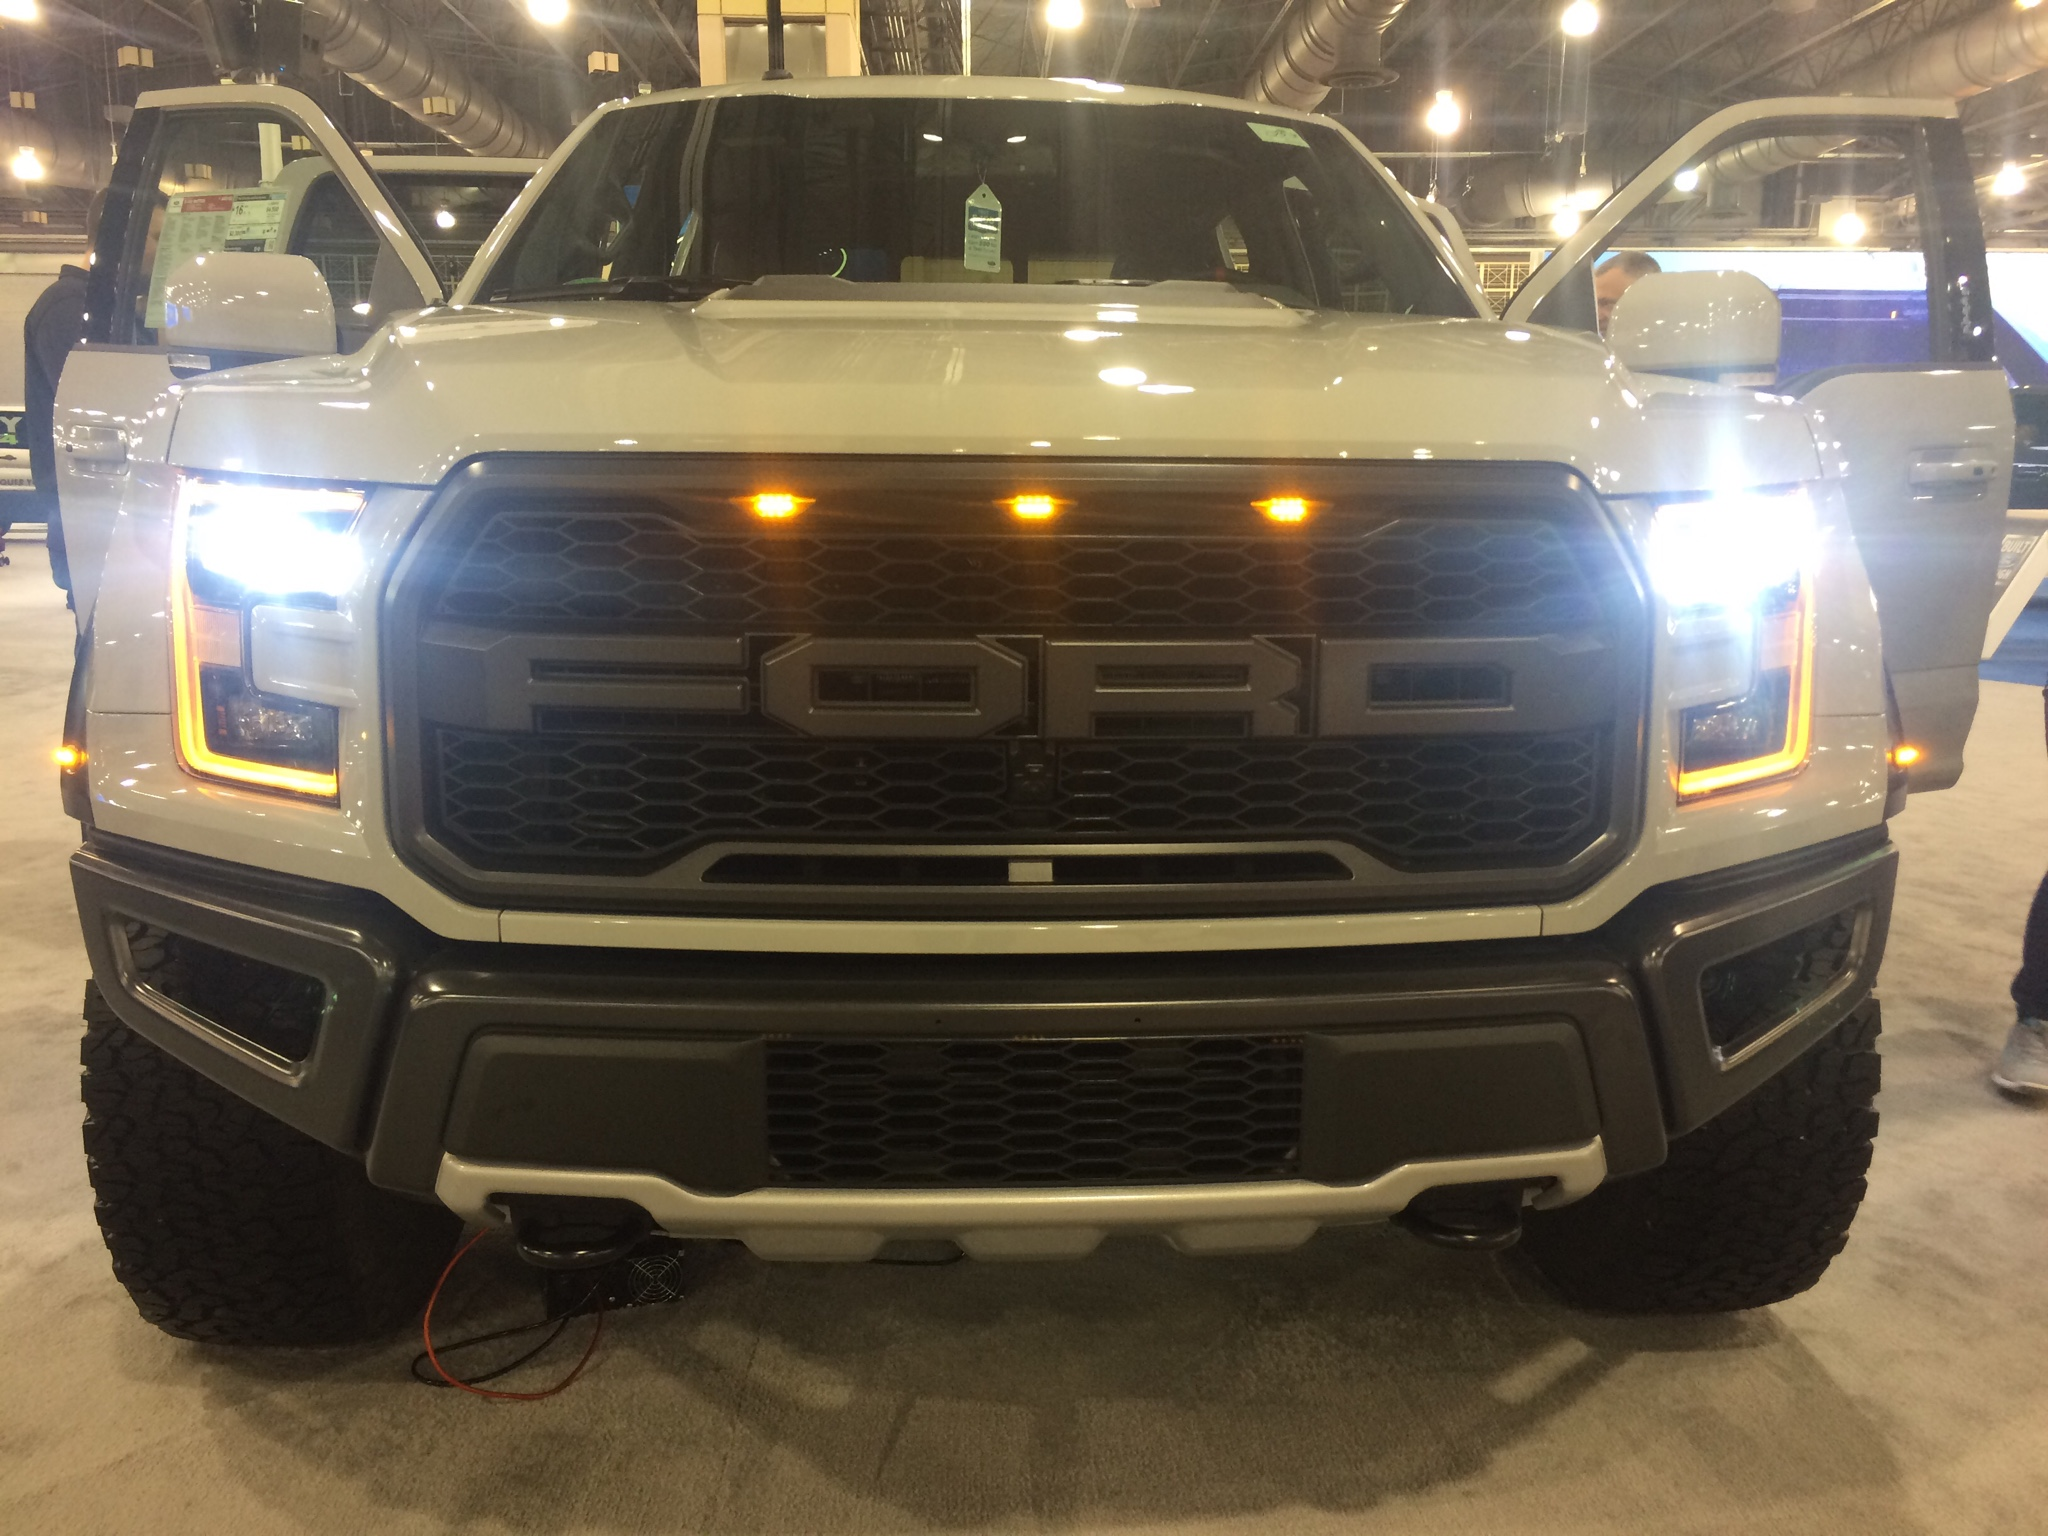 2018 F 150 Diesel Engine Refreshed Look Page 2 Ford F150 Forum